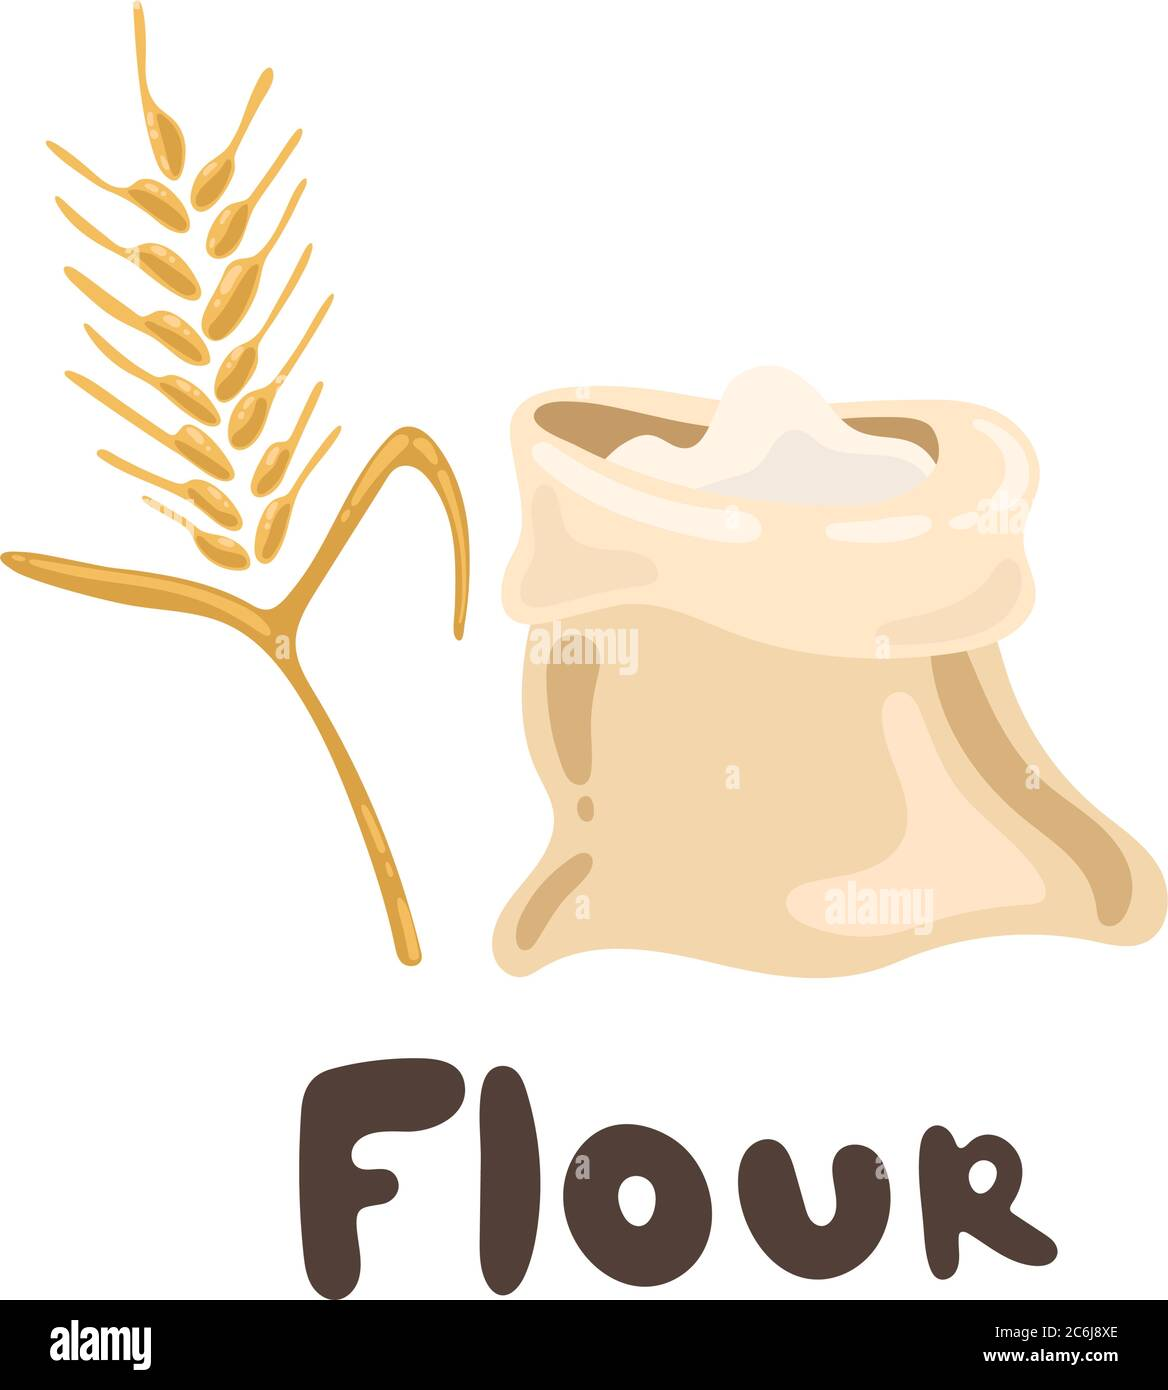 a bag of flour and ears of wheat design element vector clipart stock illustration bread house heap of flour bread and harvest theme food and stock vector image art alamy https www alamy com a bag of flour and ears of wheat design element vector clipart stock illustration bread house heap of flour bread and harvest theme food and image365507814 html